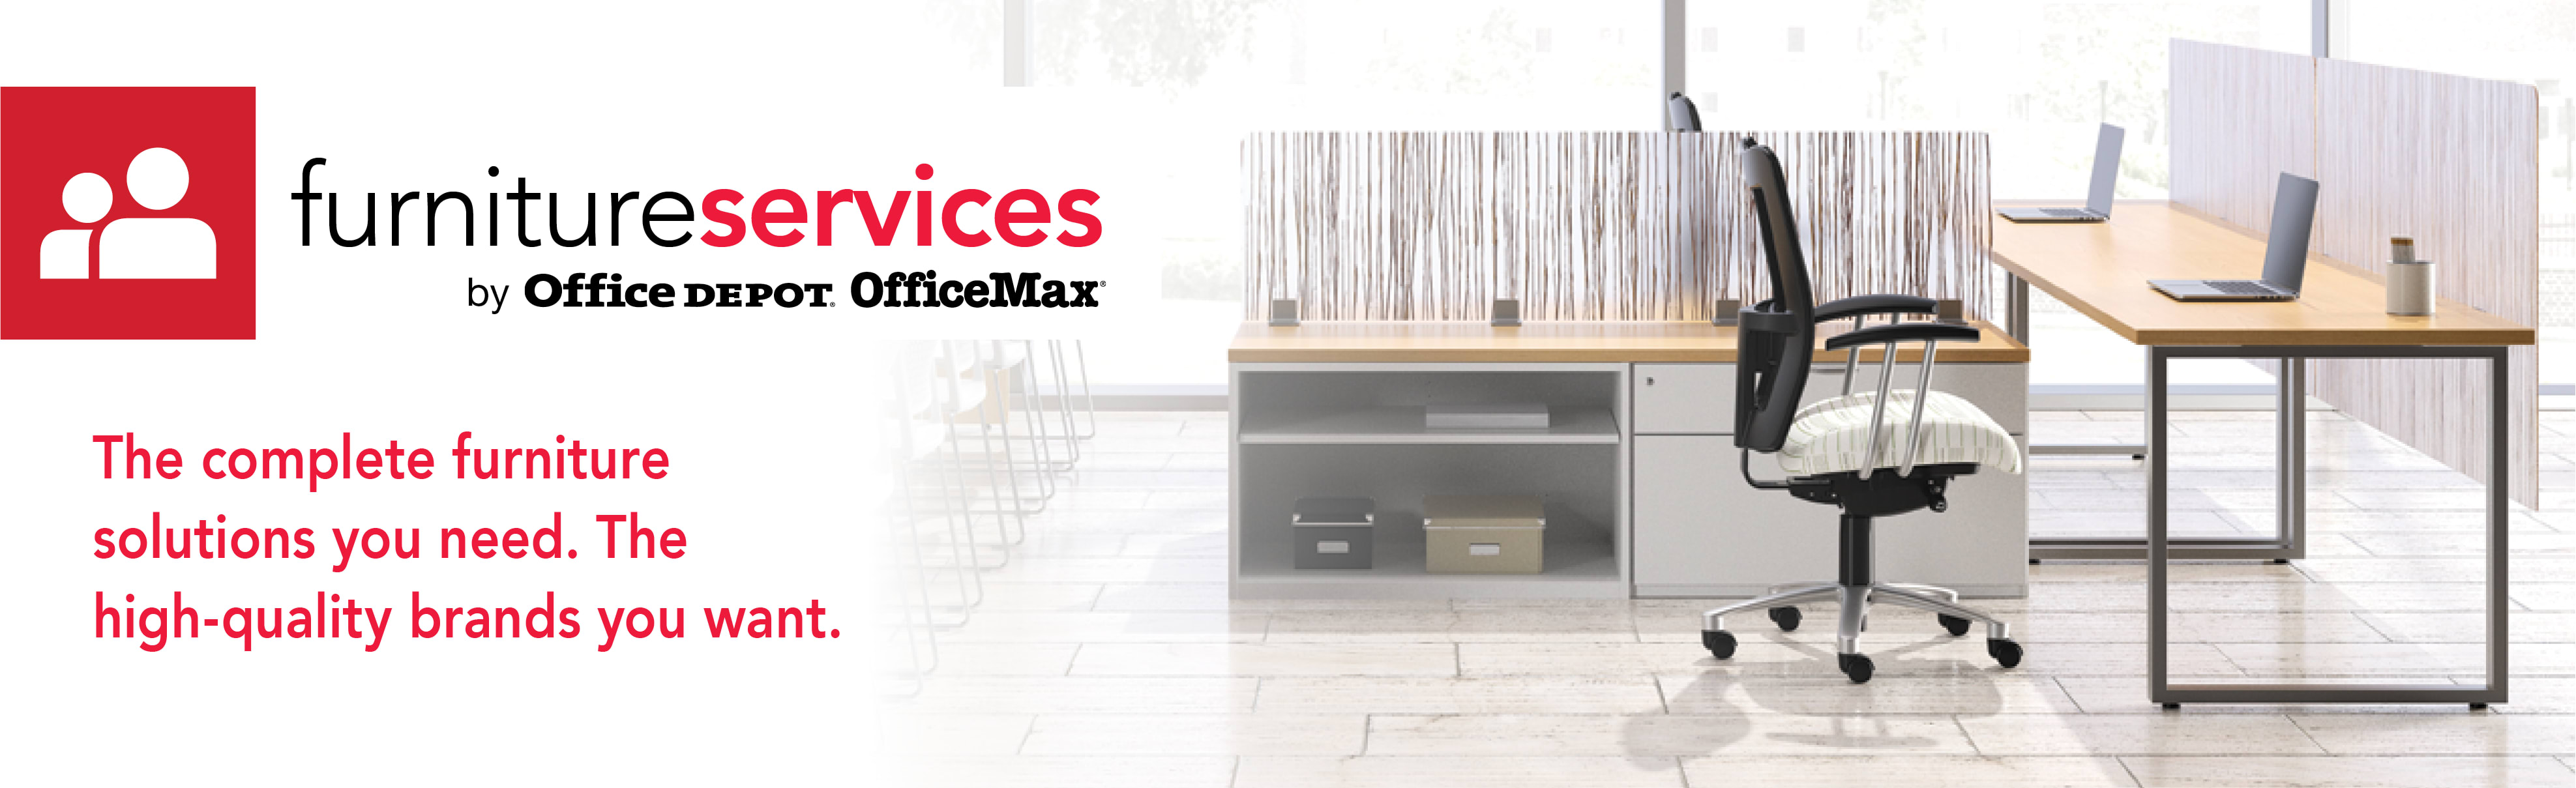 furniture services by OfficeDepot OfficeMax